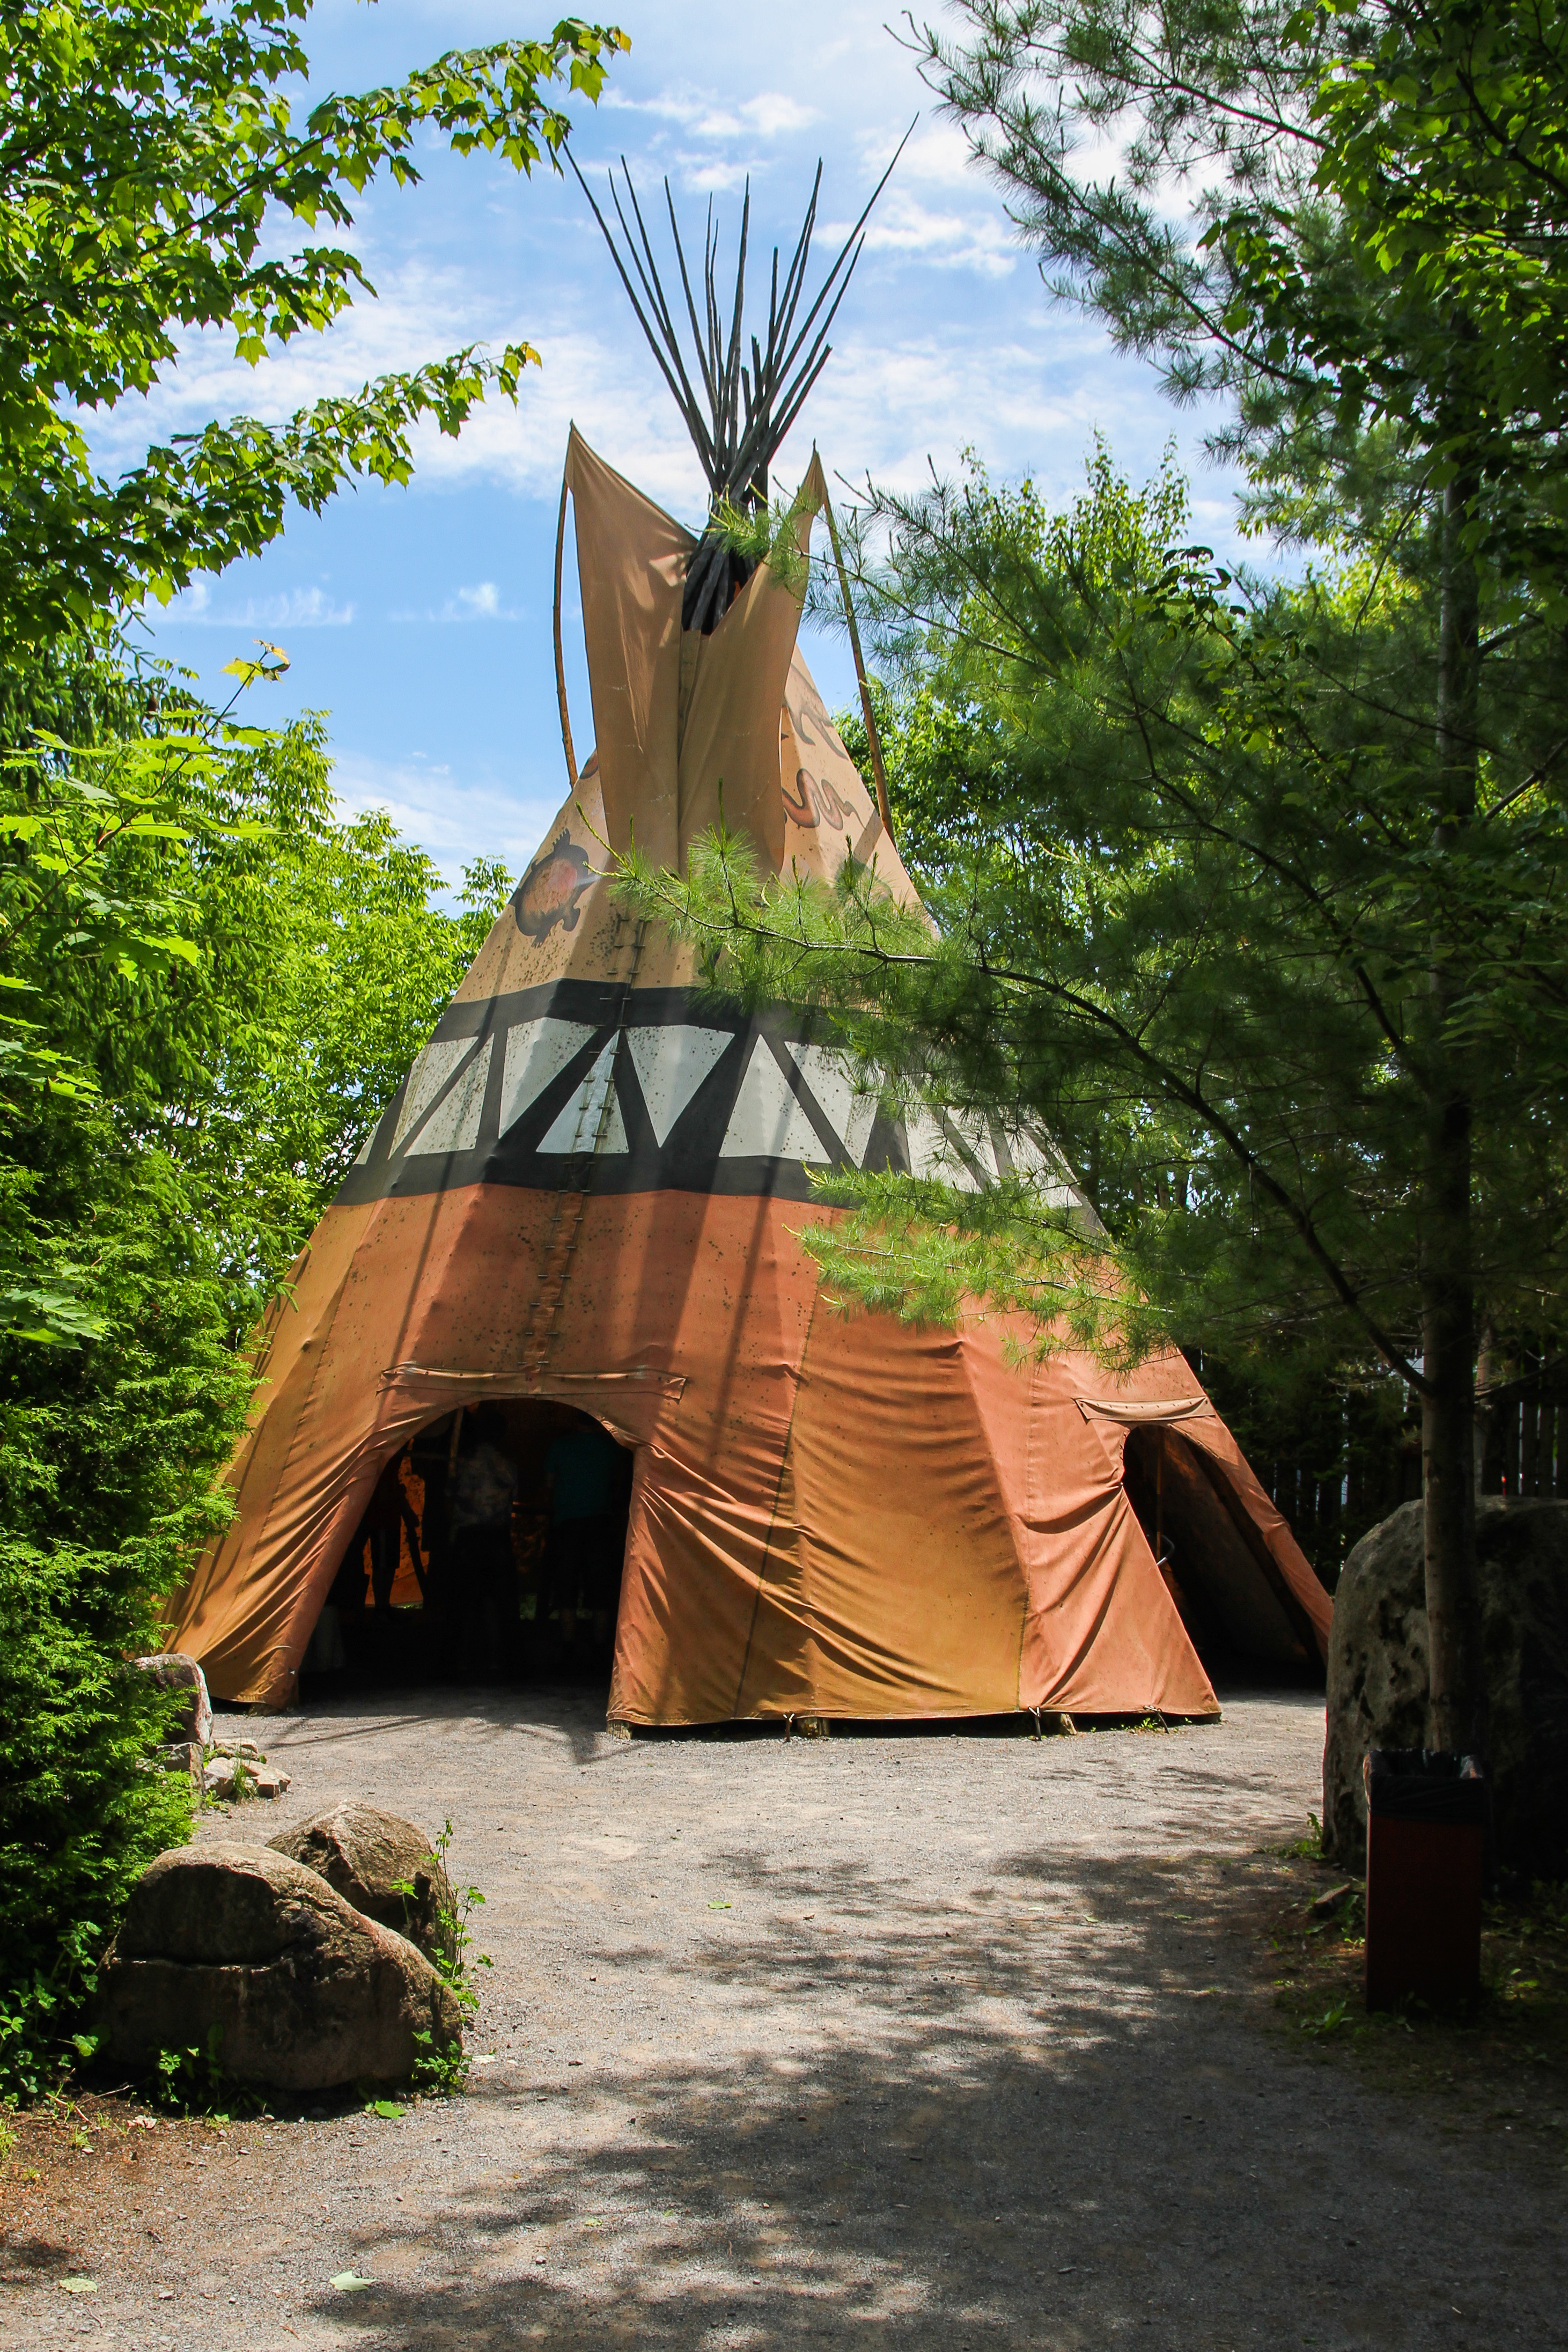 file tee pee g ant sur le site traditionnel huron onho a chetek8e wikimedia commons. Black Bedroom Furniture Sets. Home Design Ideas